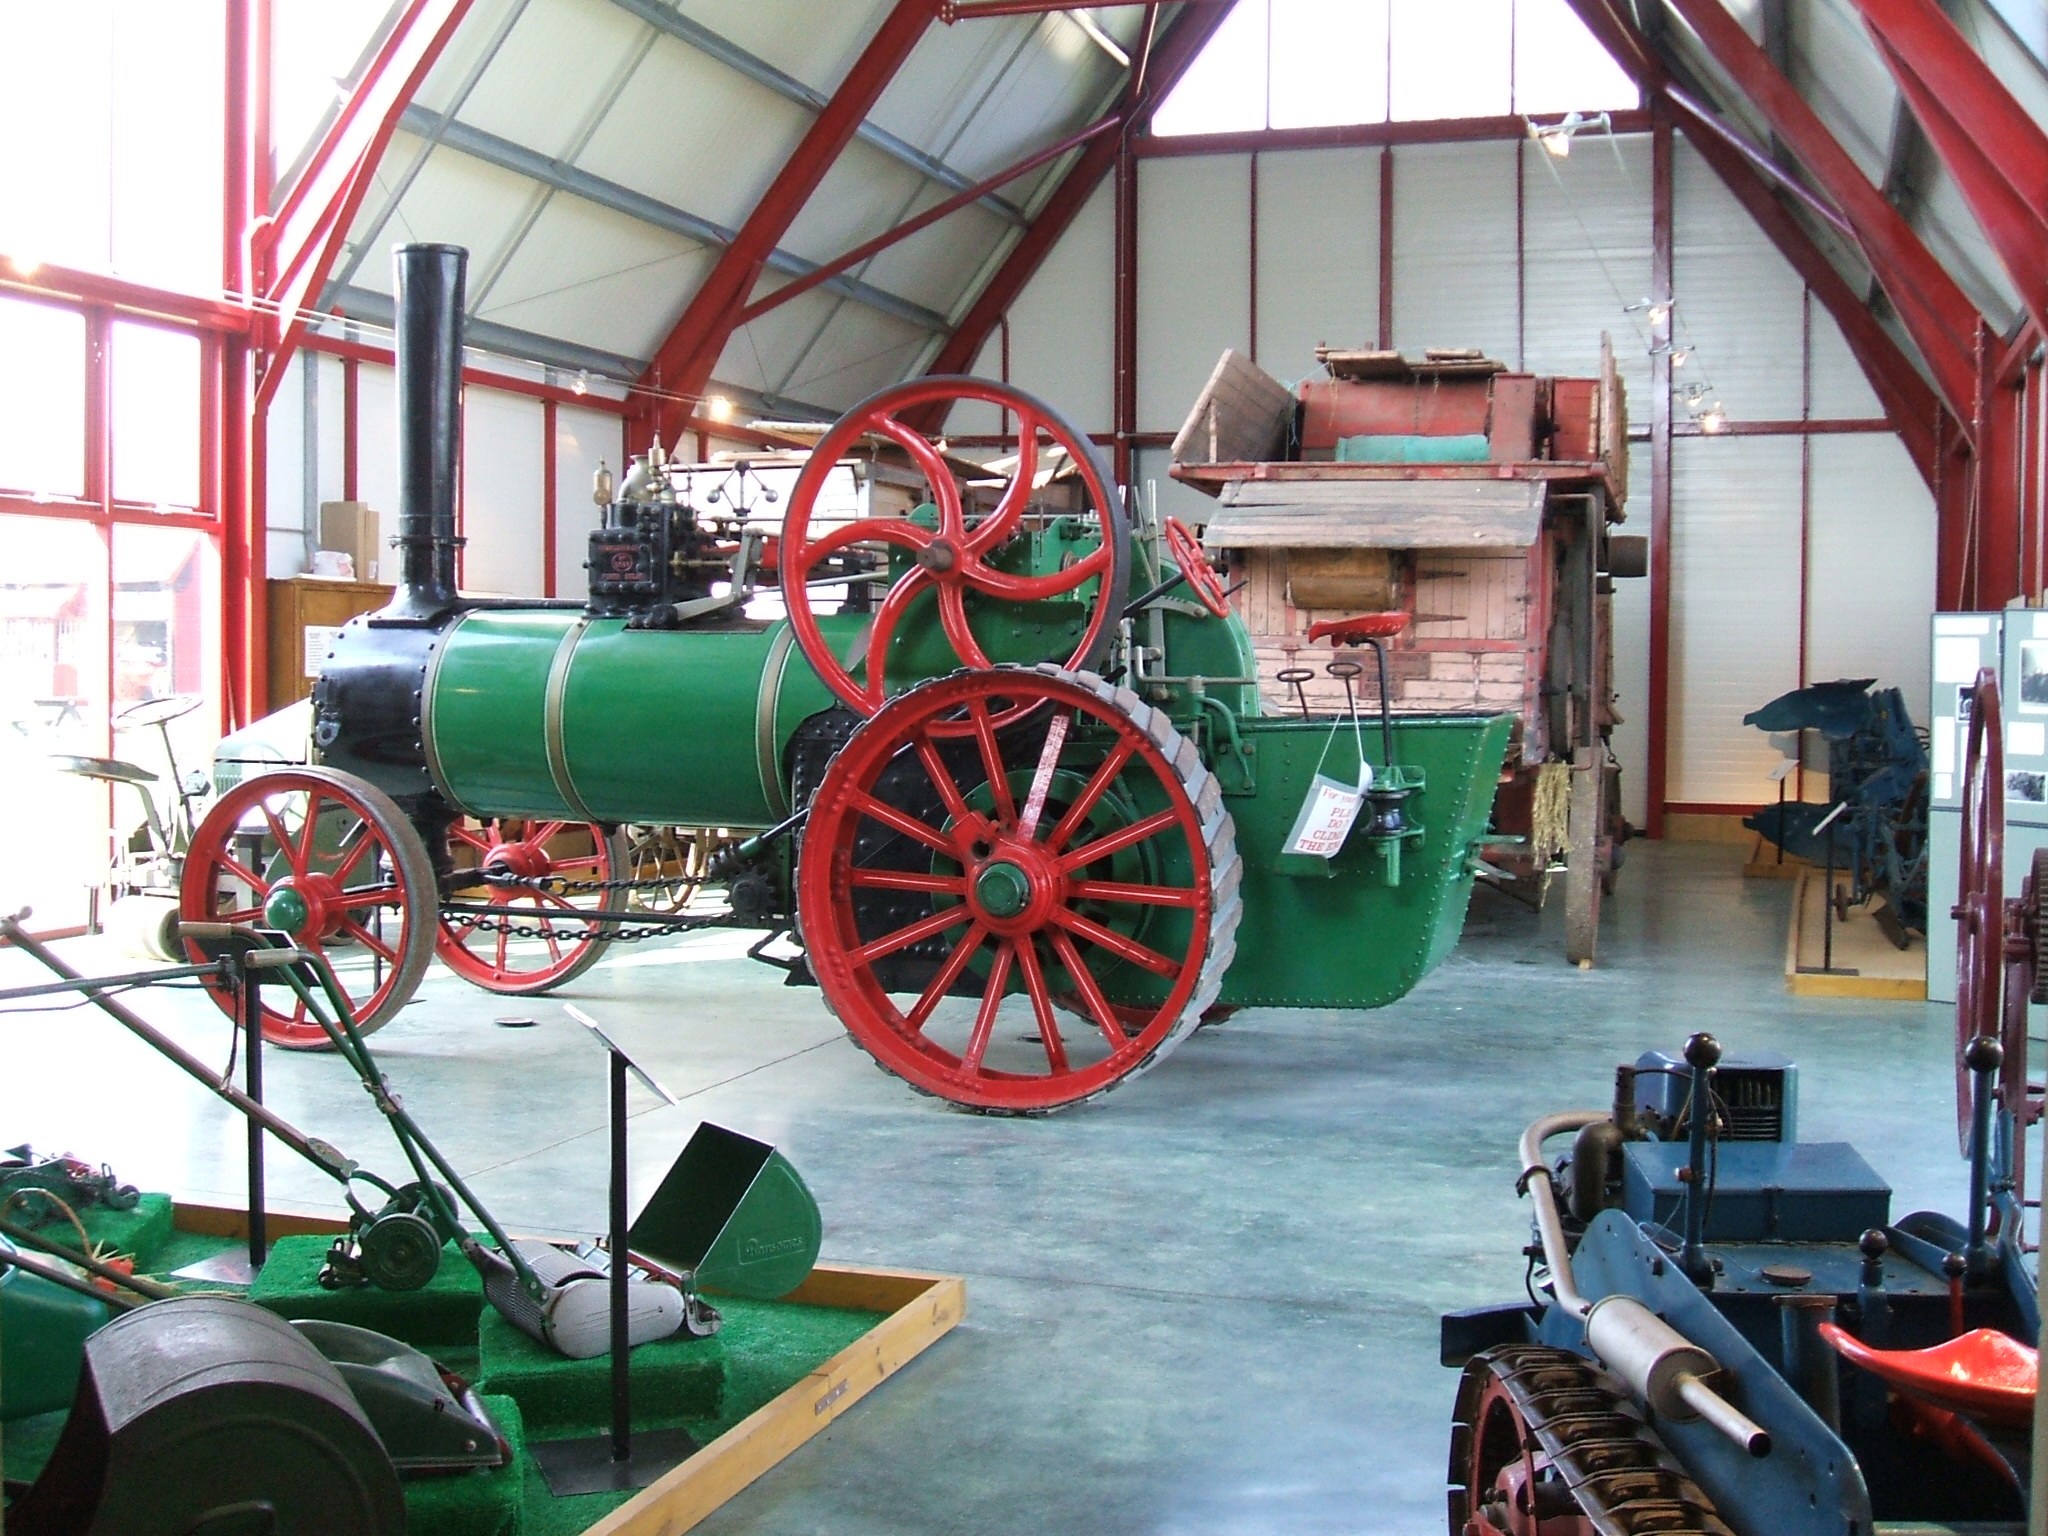 The Bone Building holds the Museum of East Anglian Life's collection of arefacts from the Ransomes company of Ipswich. The steam engine in the picture was used by nuns in Ireland before it came to the Museum.